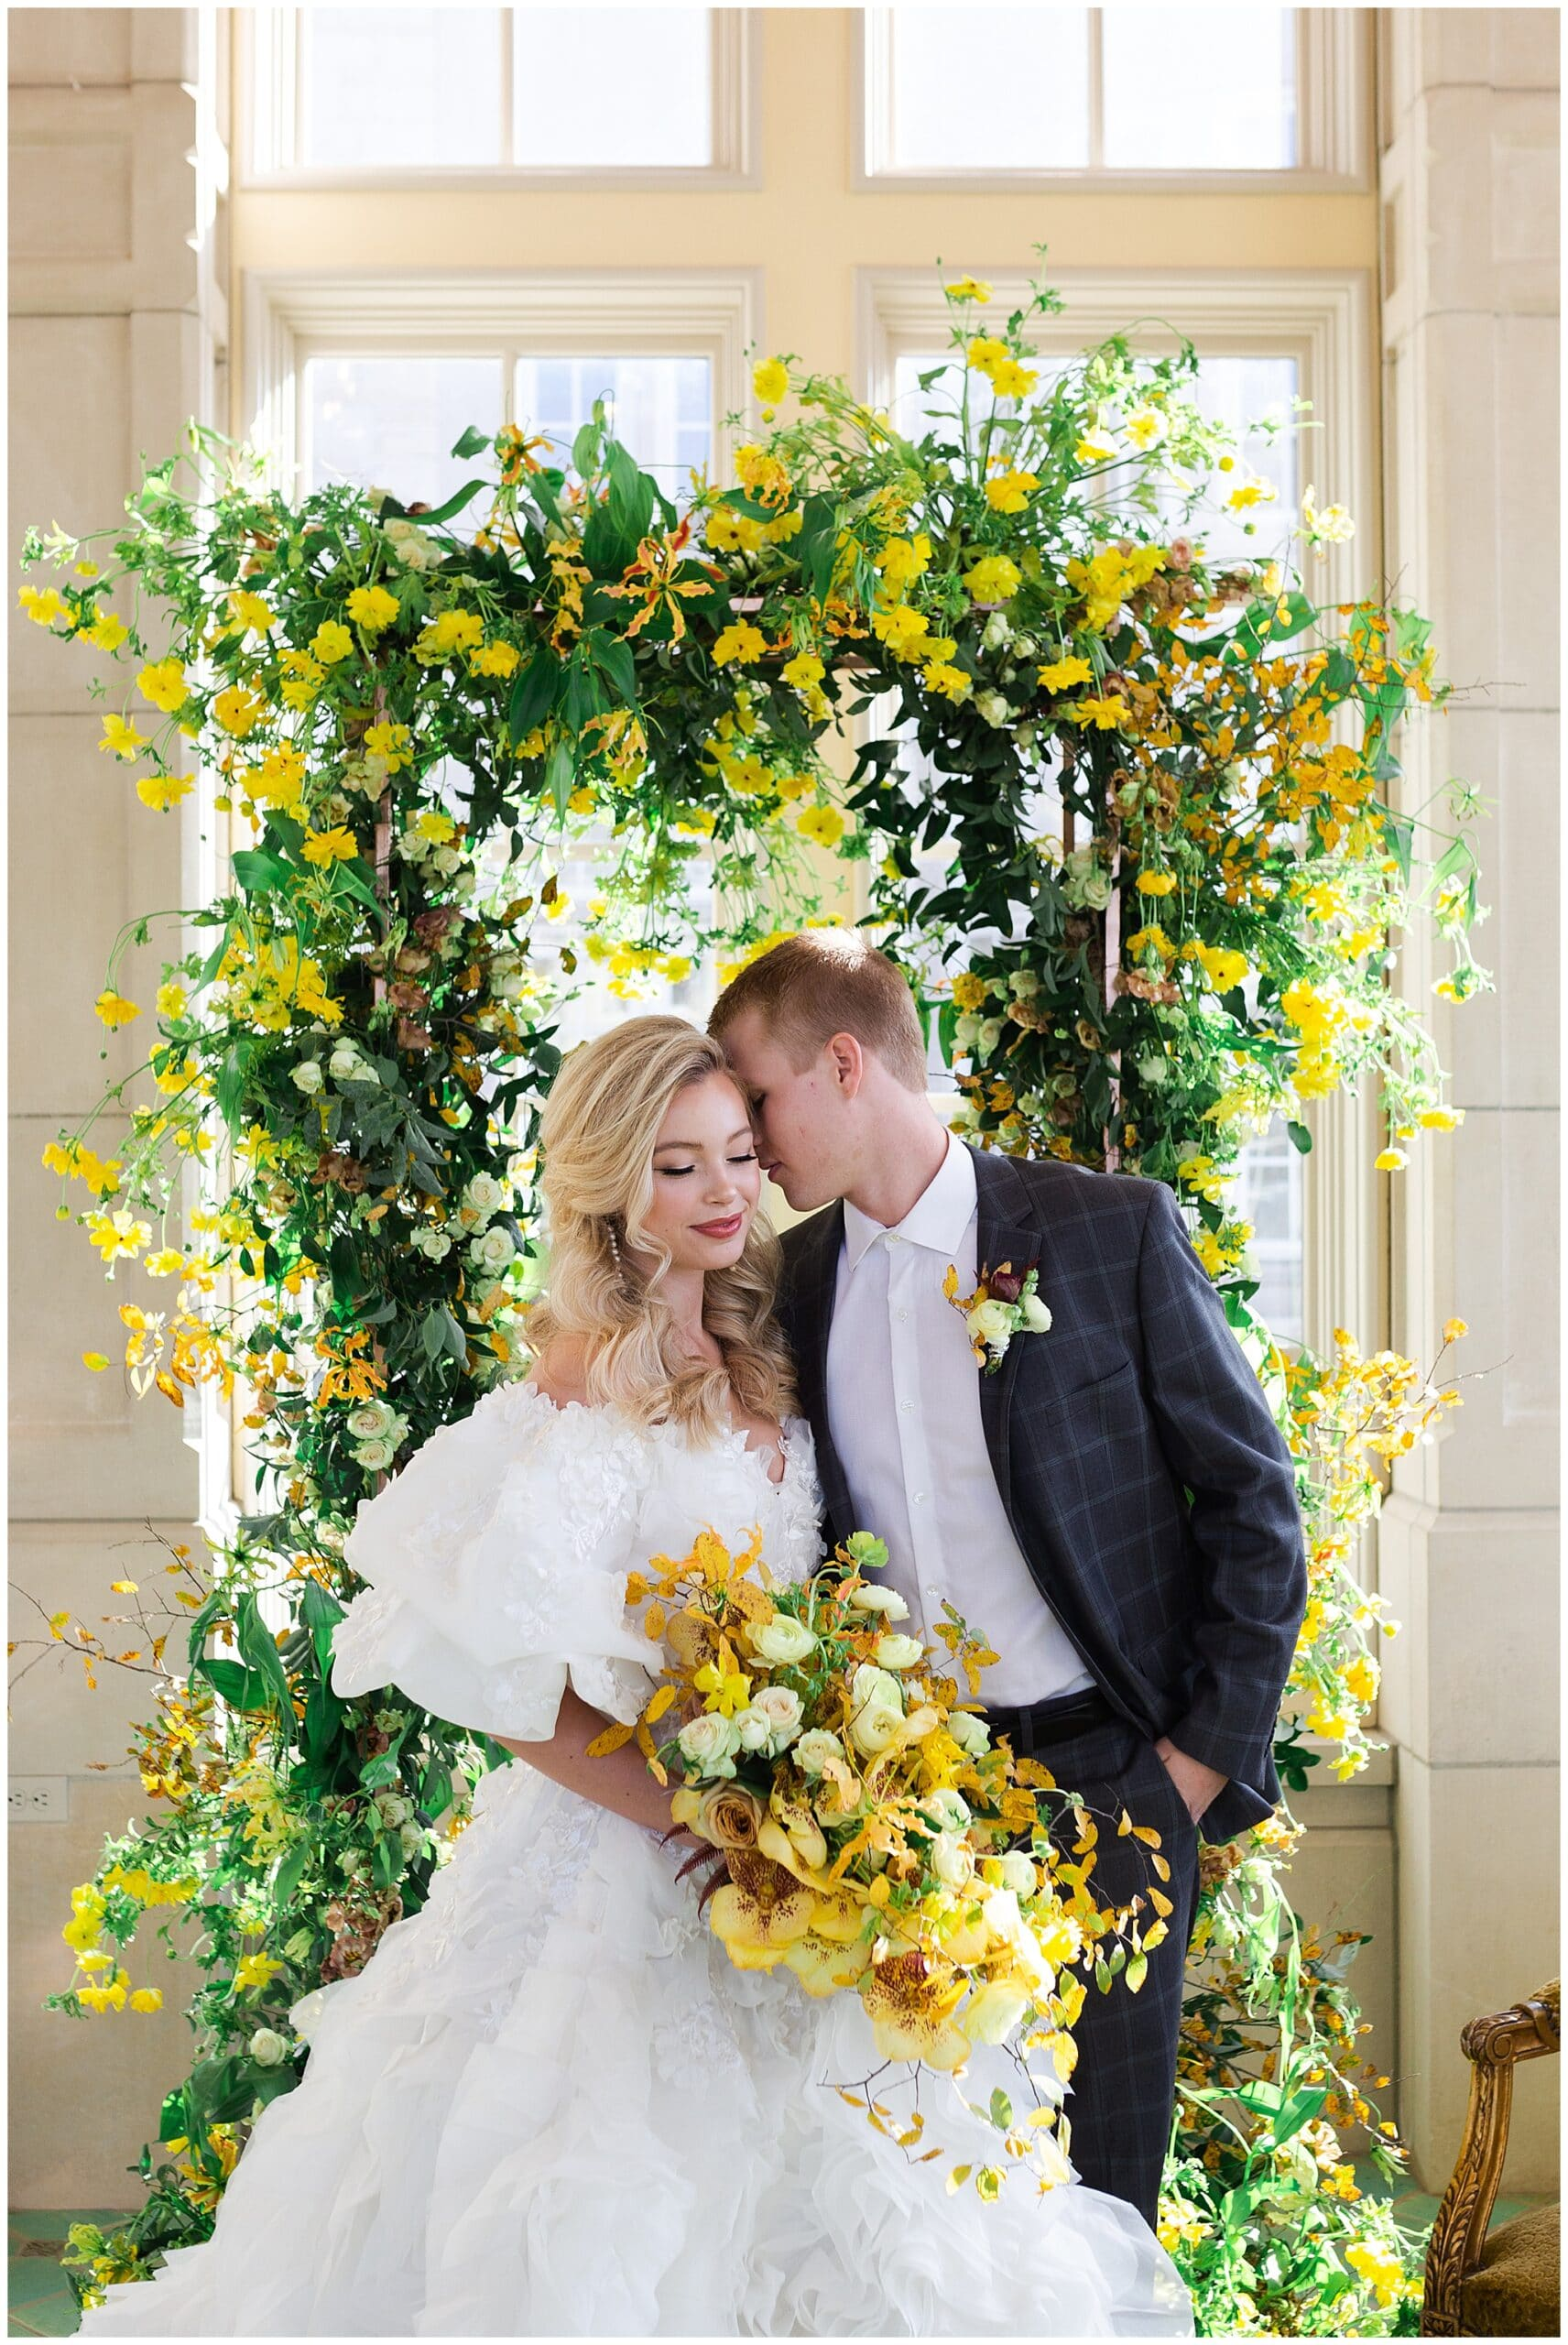 bride and groom kiss on wedding day at The Olana in Hickory Creek, Texas in a yellow themed wedding captured by Swish and Click Photography